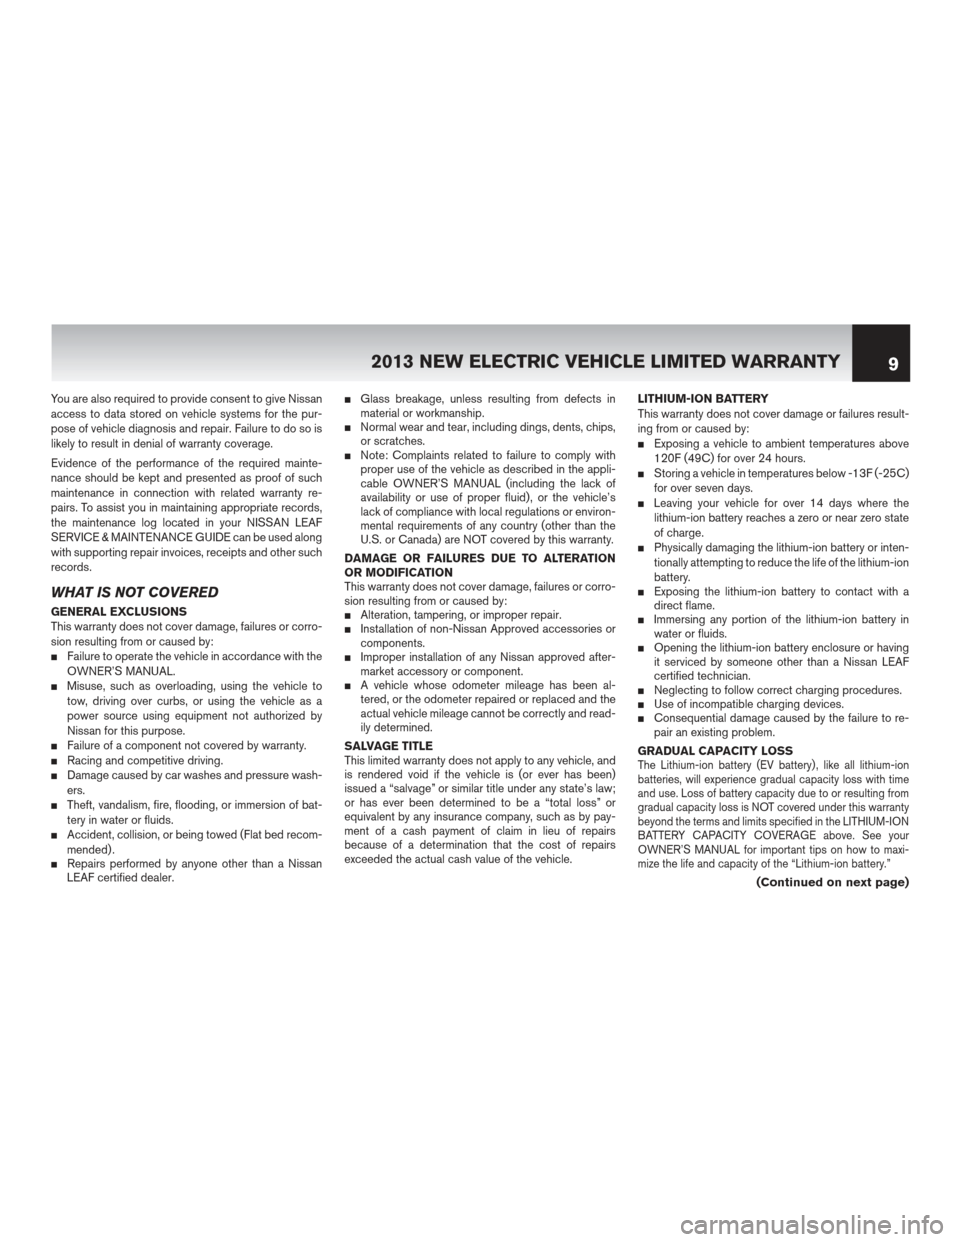 NISSAN LEAF 2013 1.G Warranty Booklet You are also required to provide consent to give Nissan access to data stored on vehicle systems for the pur- pose of vehicle diagnosis and repair. Failure to do so is likely to result in denial of wa